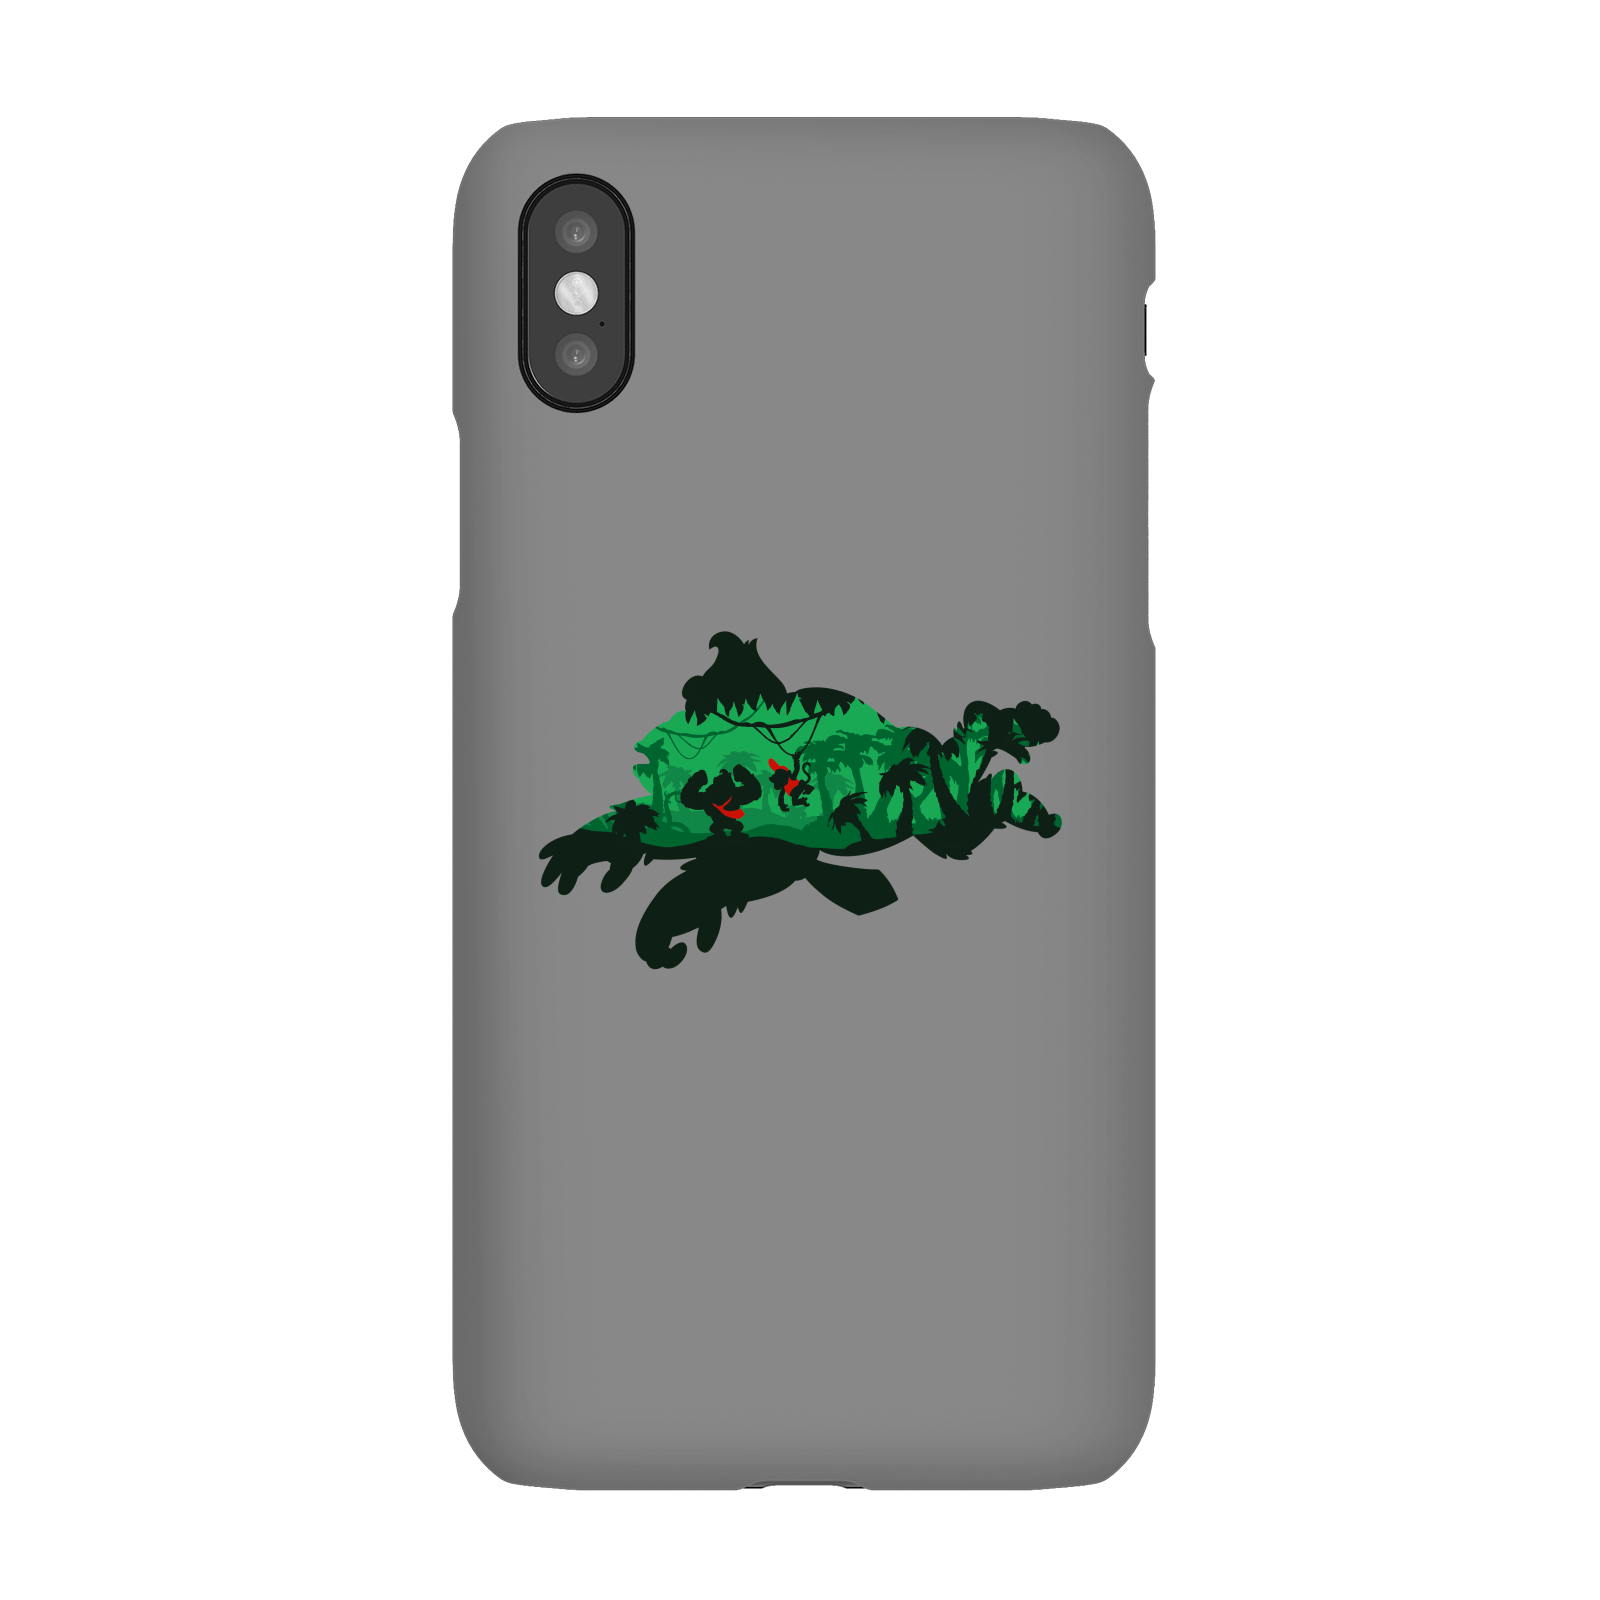 Donkey Kong Silhouette Phone Case